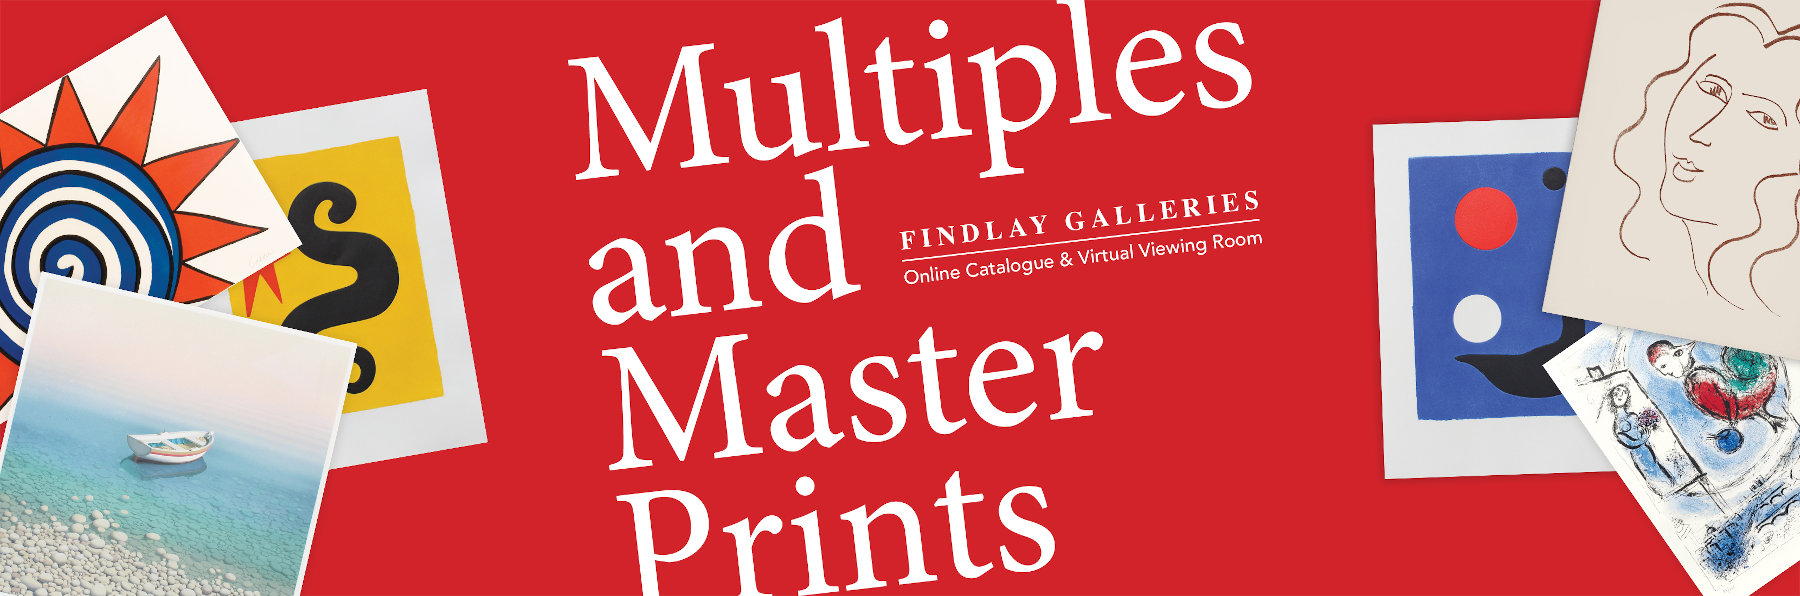 Multiples Master Prints Findlay